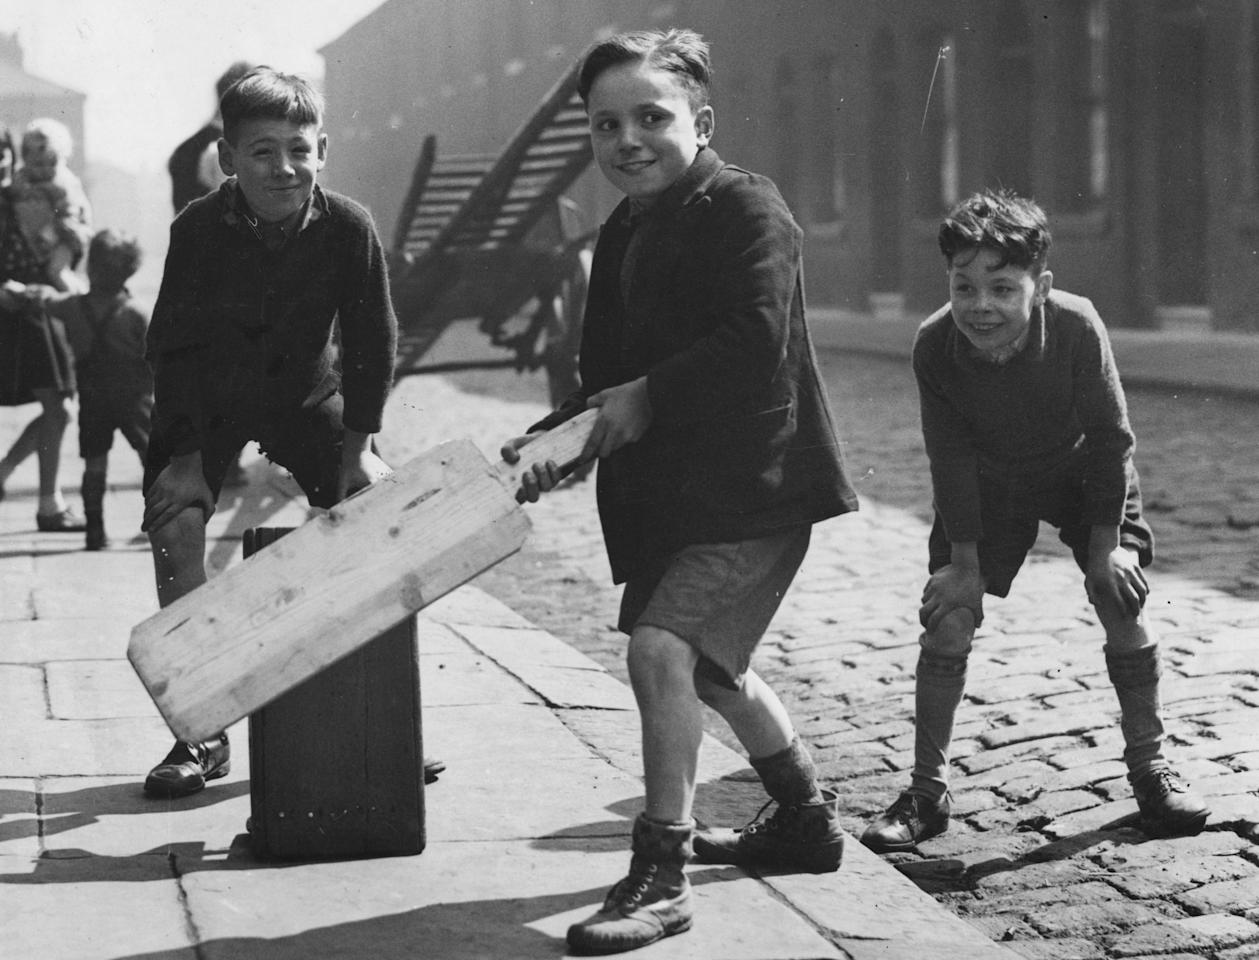 22nd April 1939:  City boys enjoying a game of street cricket with a large home-made bat and a suitcase as the wicket.  (Photo by Fox Photos/Getty Images)